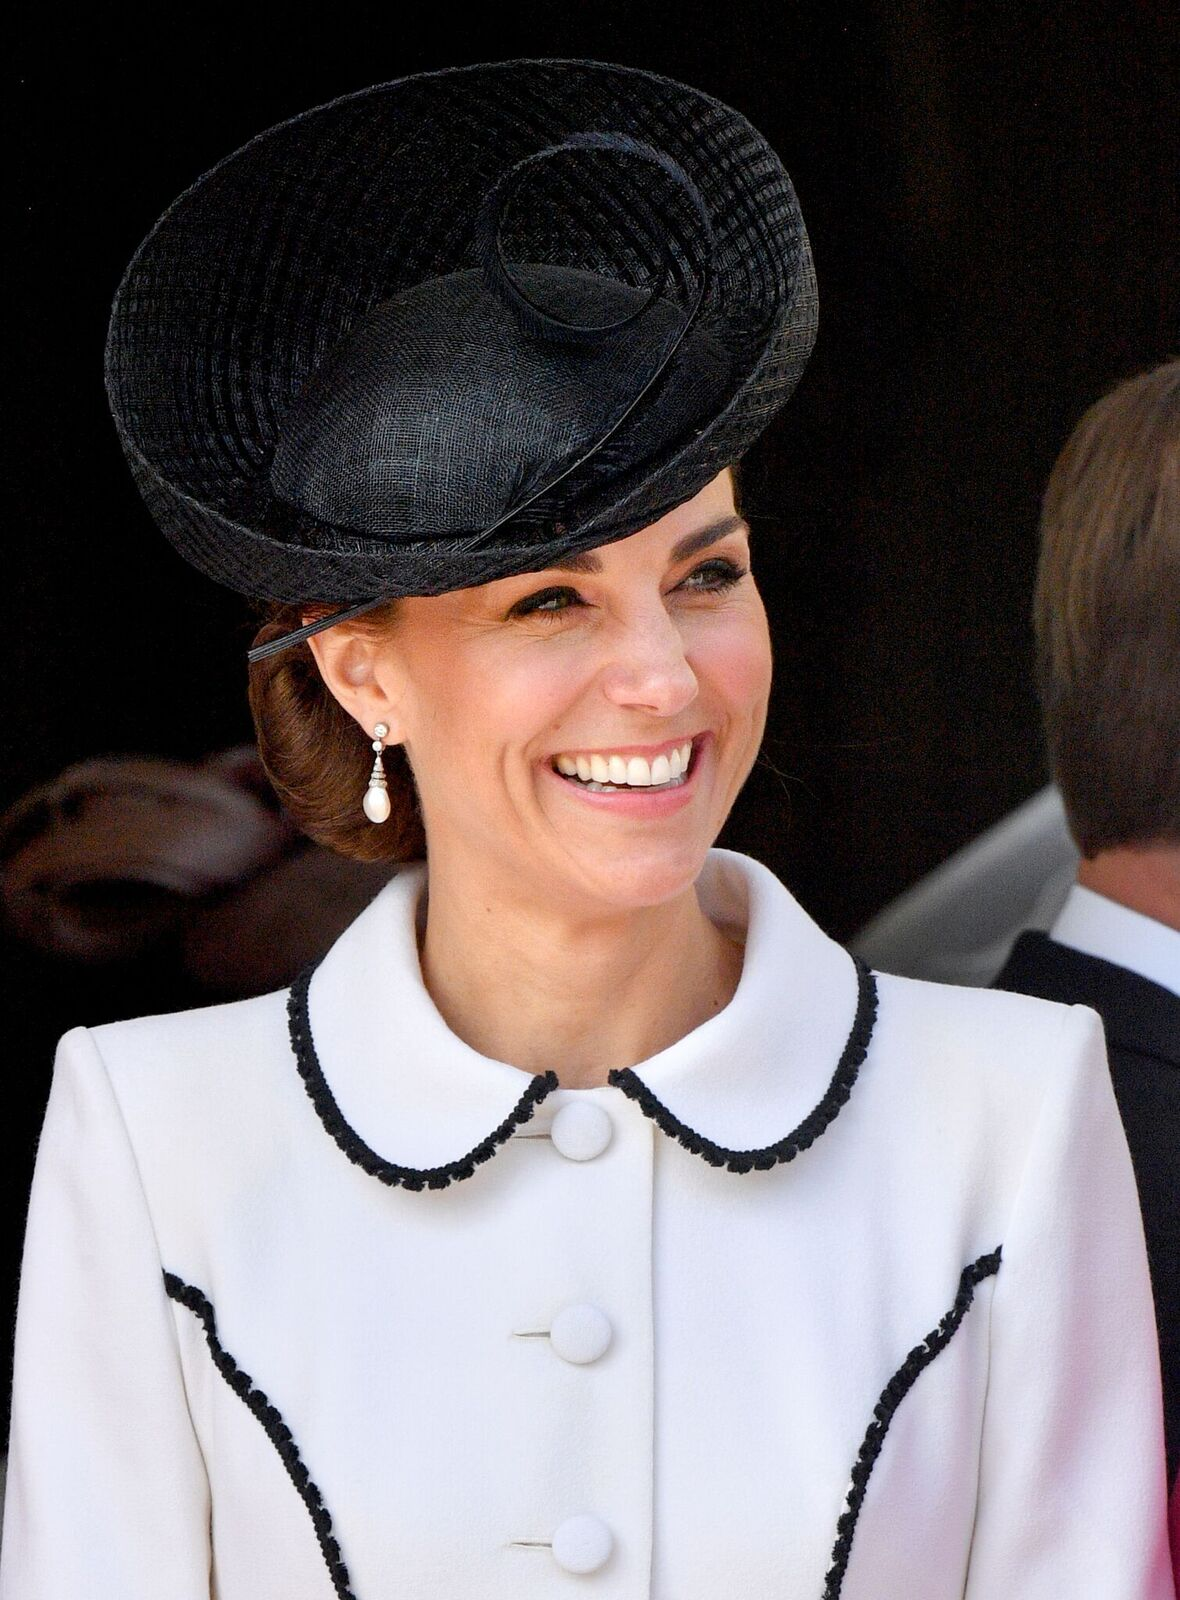 Catherine, Duchess of Cambridge attends the Order of the Garter service at St George's Chapel on June 17, 2019   Photo: Getty Images